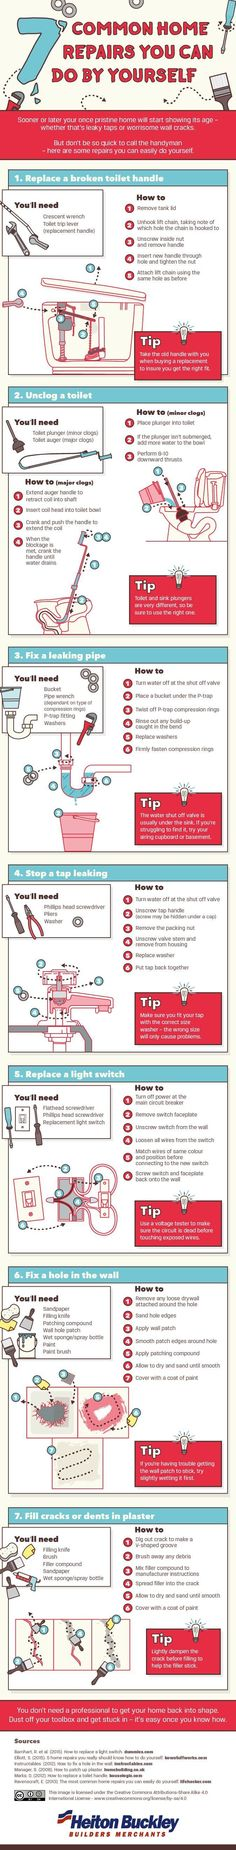 This is a fantastic infographic that showcases 7 common home repairs that you too can do yourself. Because all home need care and attention. If you think you have the skills to perform some of these projects yourself, here are some tips on how to get these projects completed. The organization that created this infographic, …